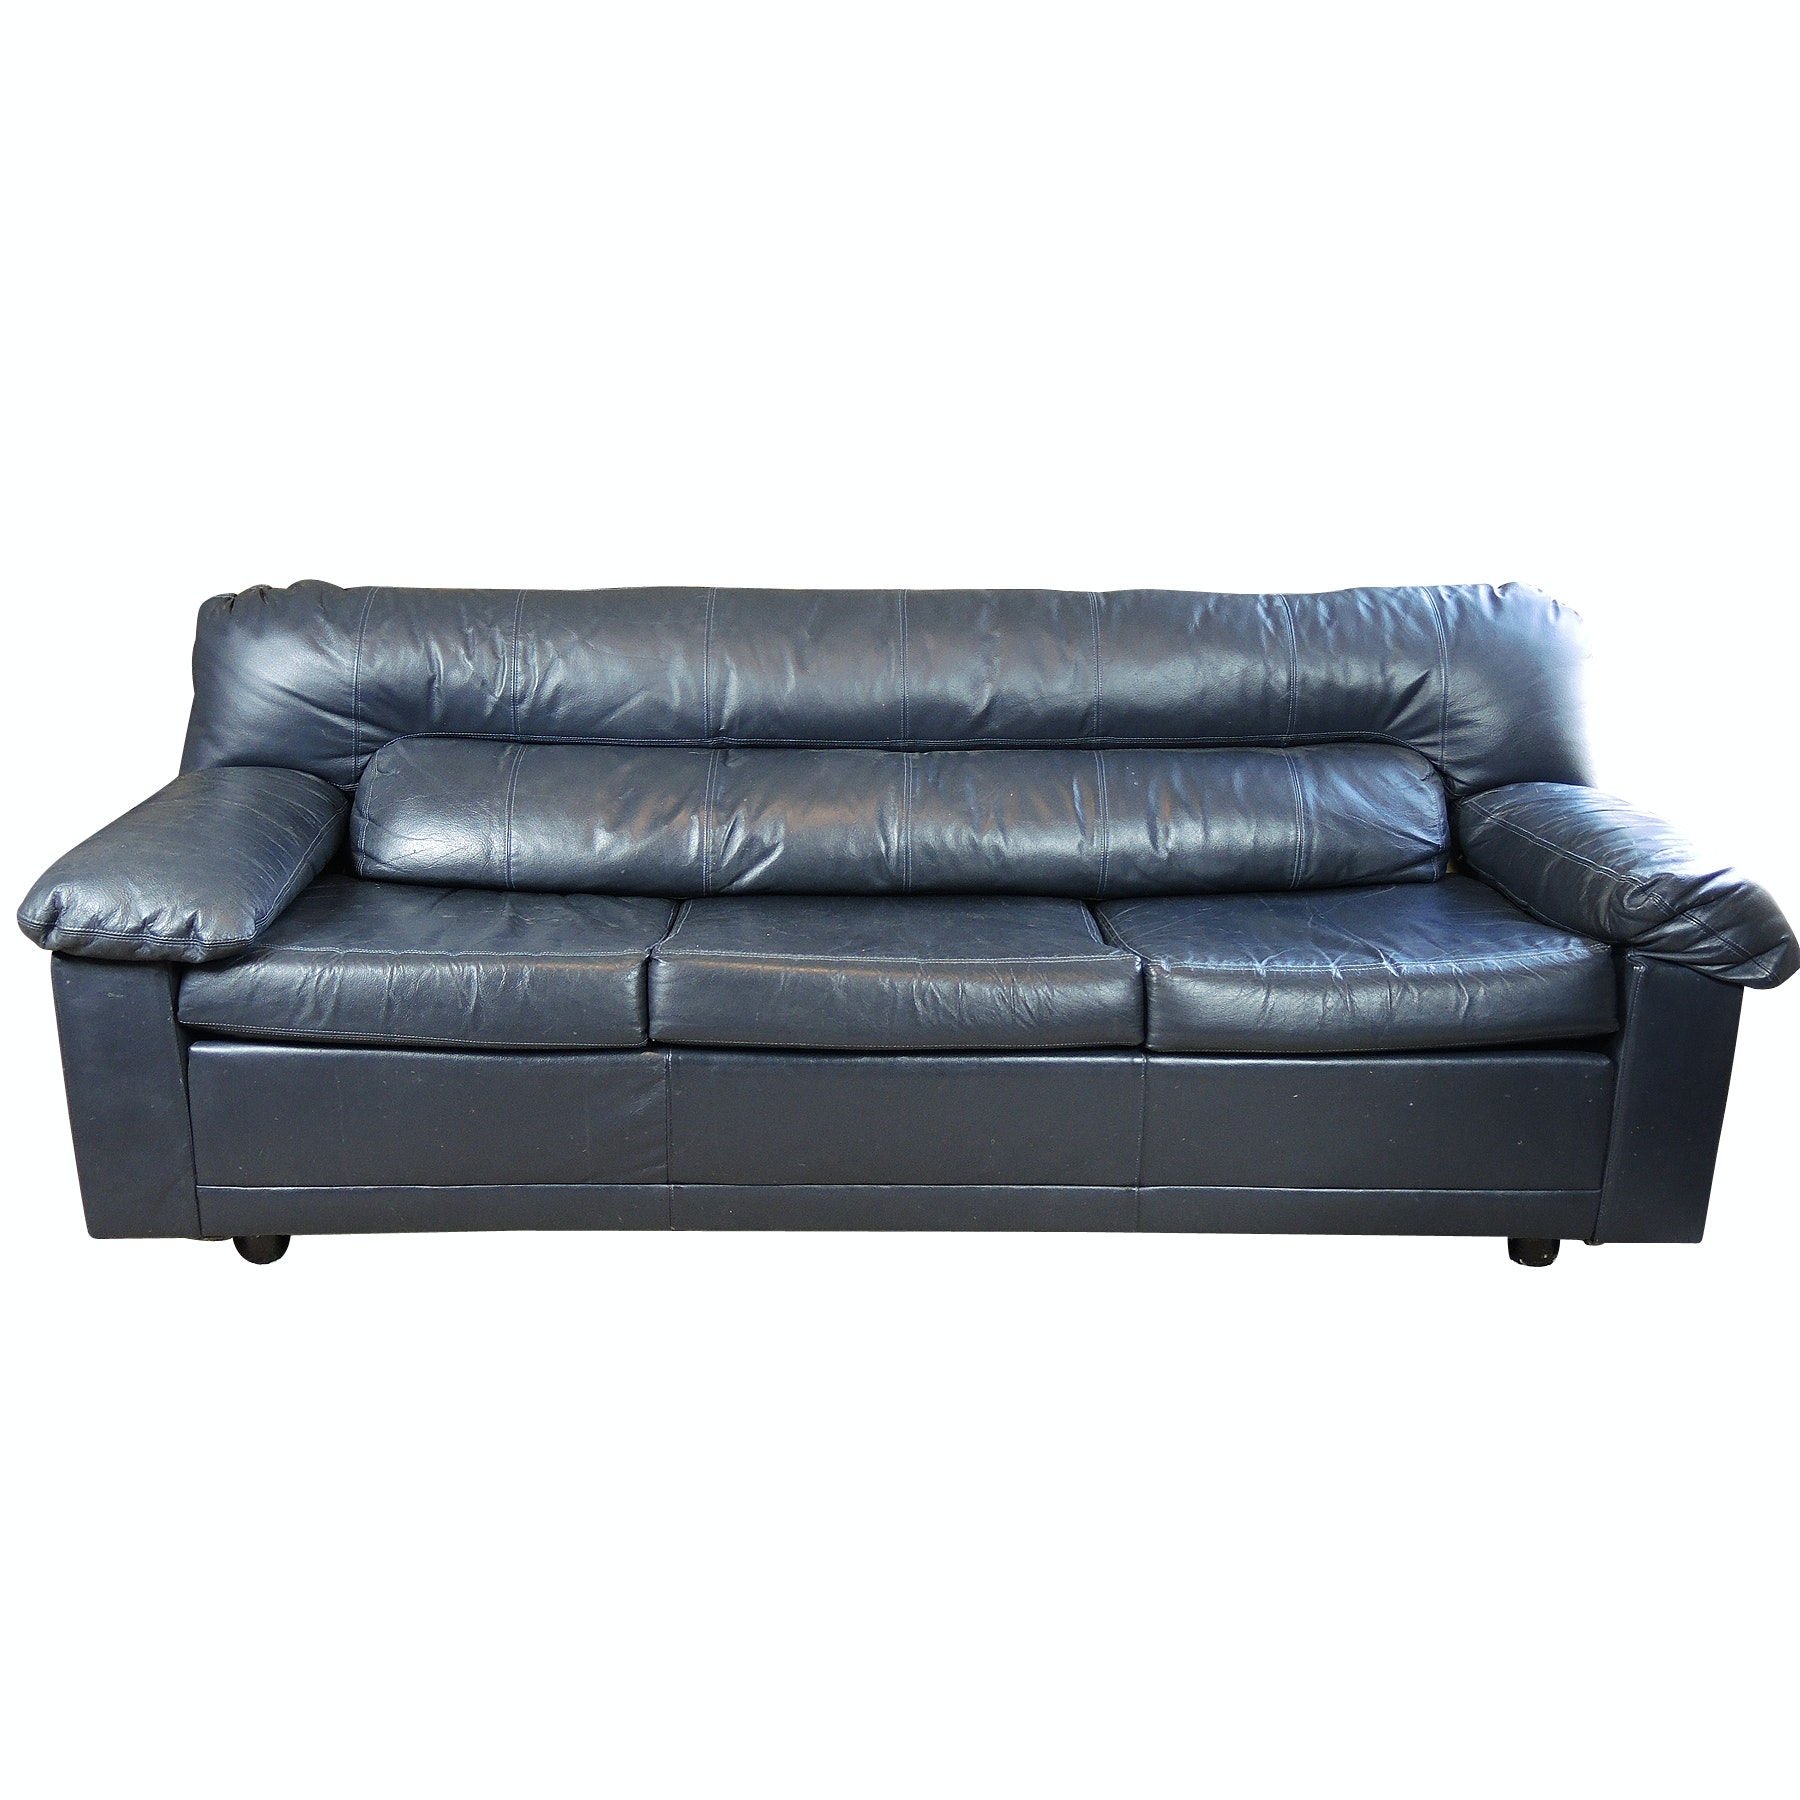 Hickory International Leather Navy Sleeper Sofa